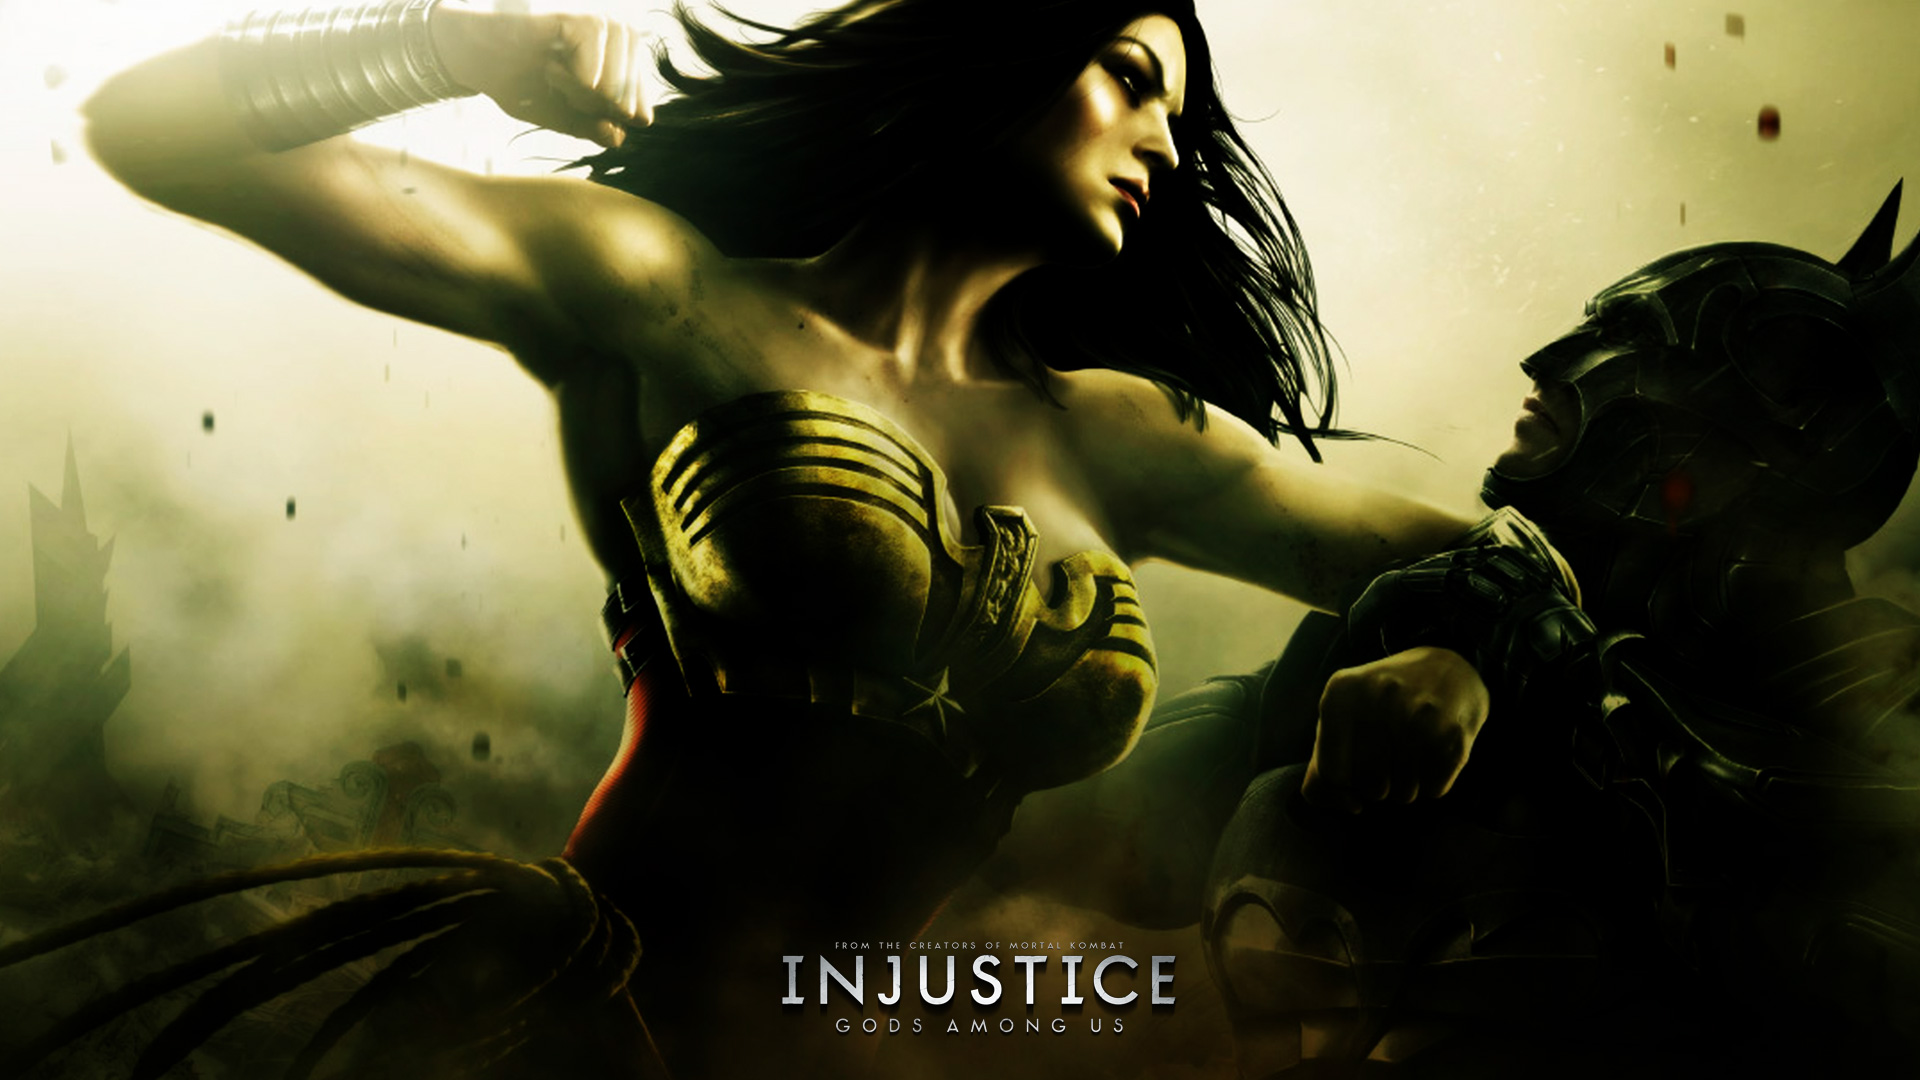 Injustice Gods Among Us wallpaper 3